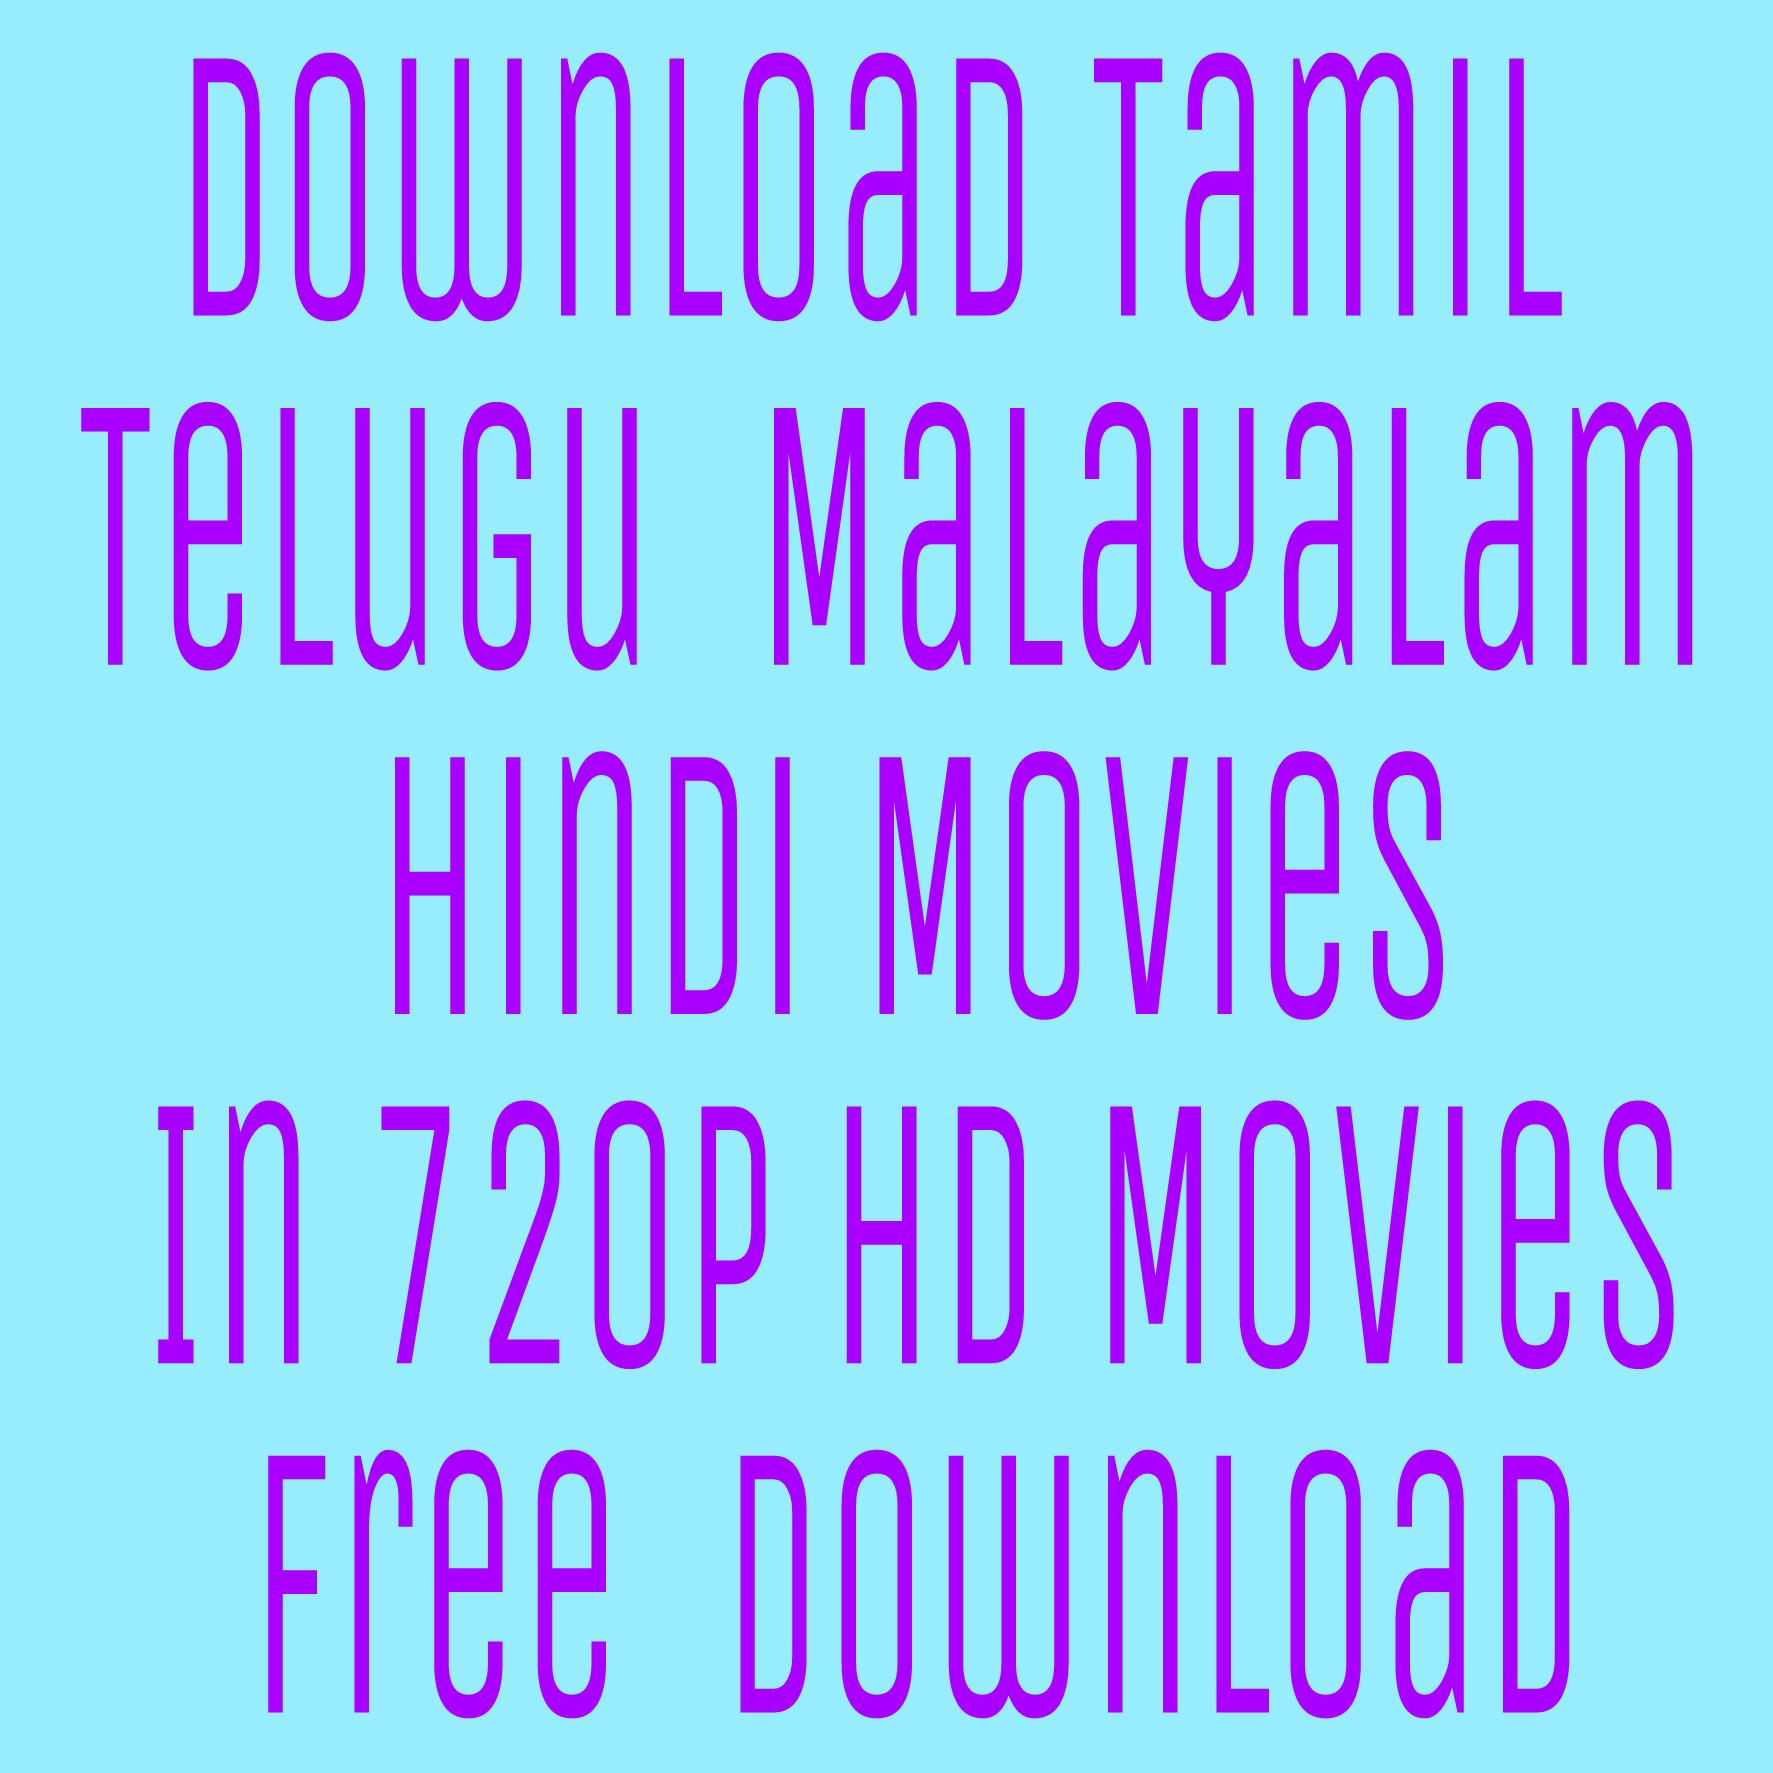 Pichaikaran movie download hd tamilrockers | Pichaikaran